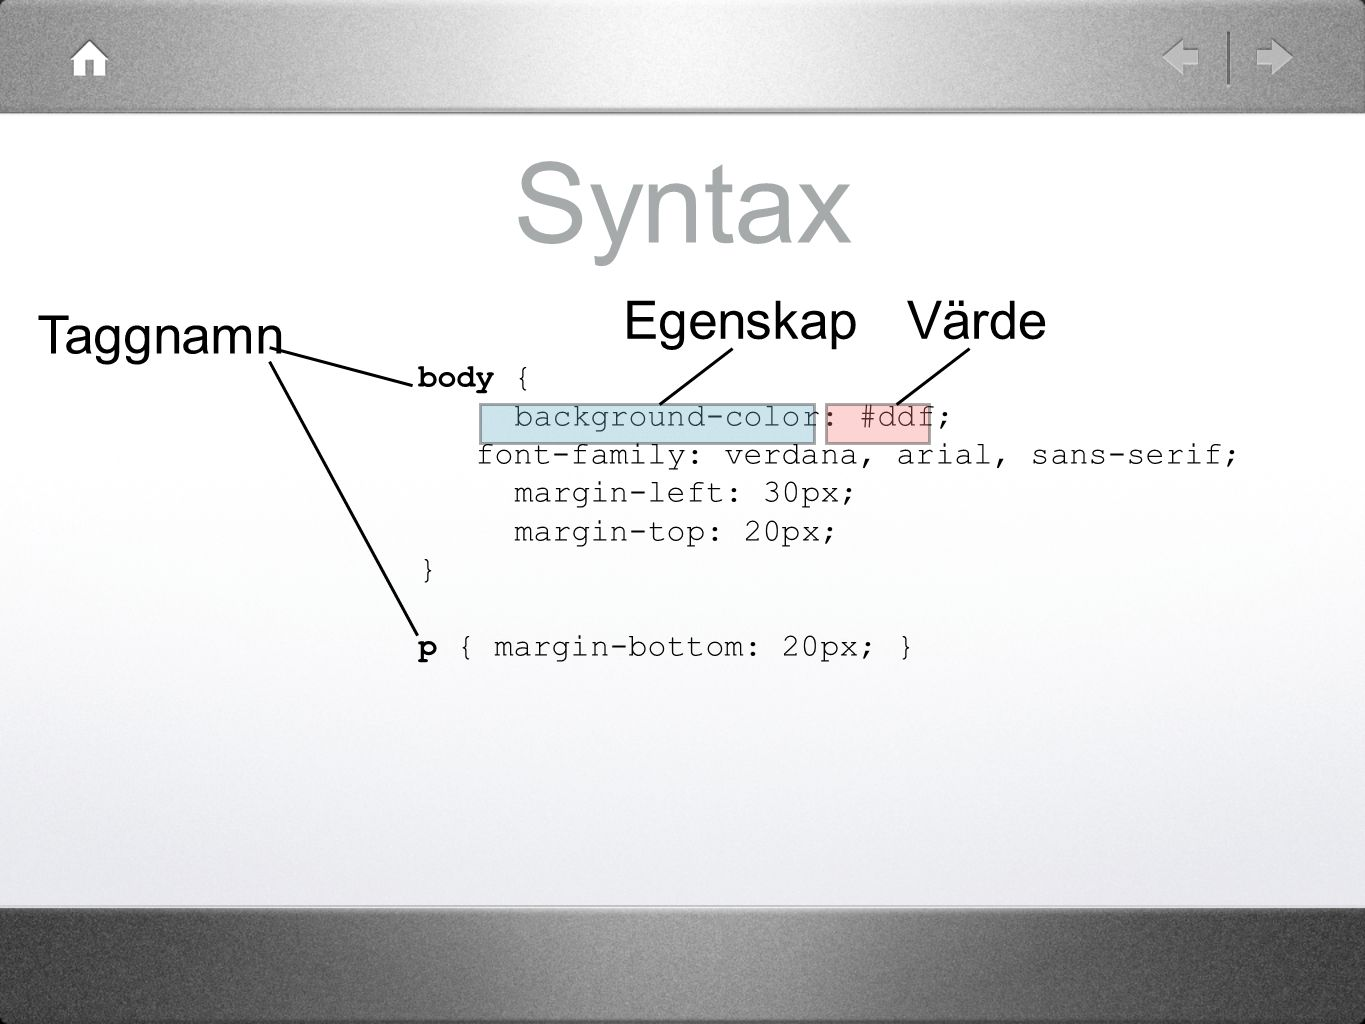 Syntax body { background-color: #ddf; font-family: verdana, arial, sans-serif; margin-left: 30px; margin-top: 20px; } p { margin-bottom: 20px; } Taggn